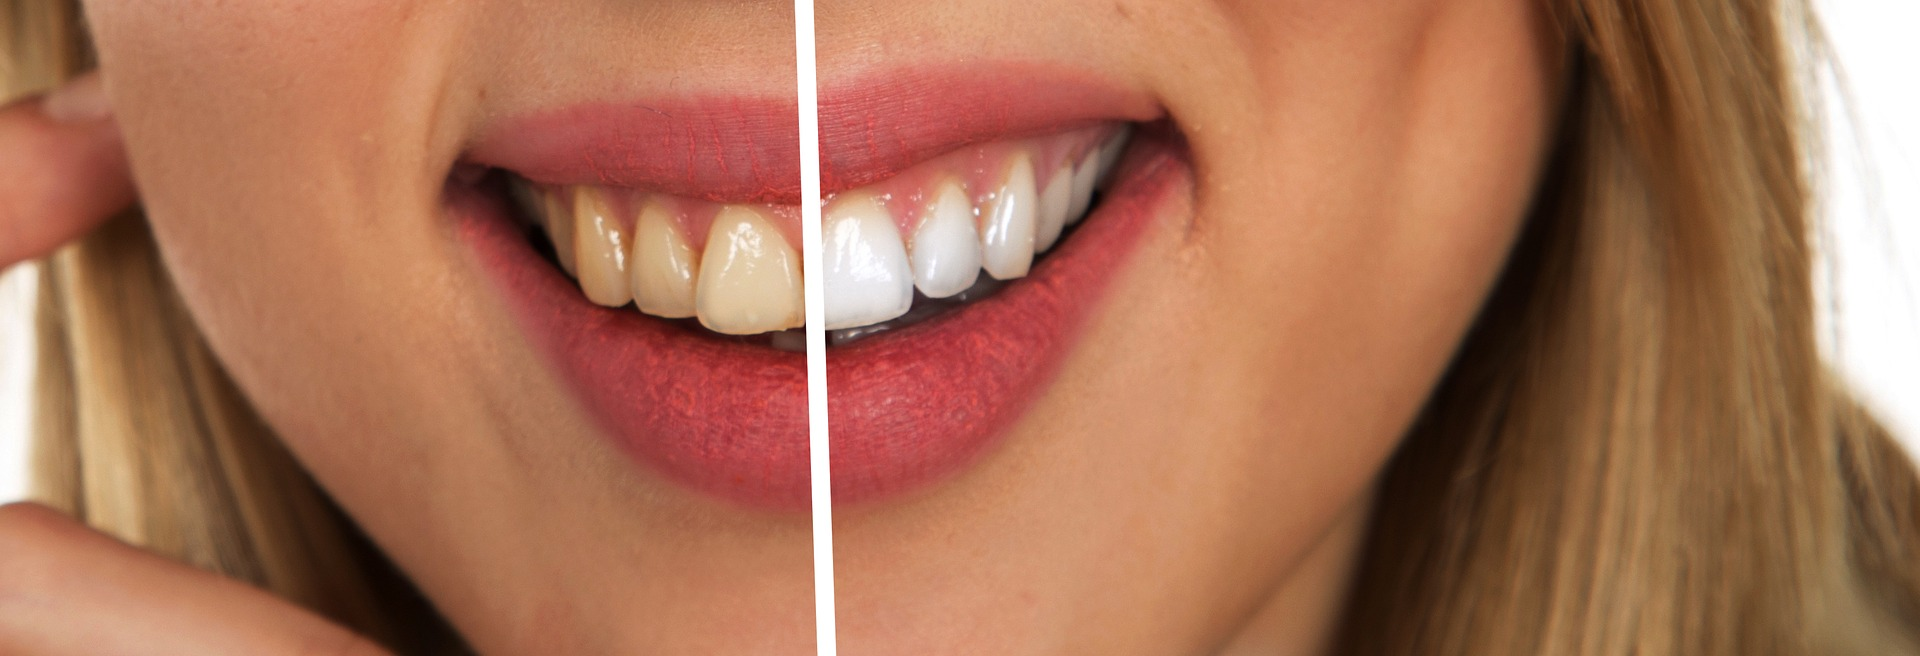 teeth whitening compared